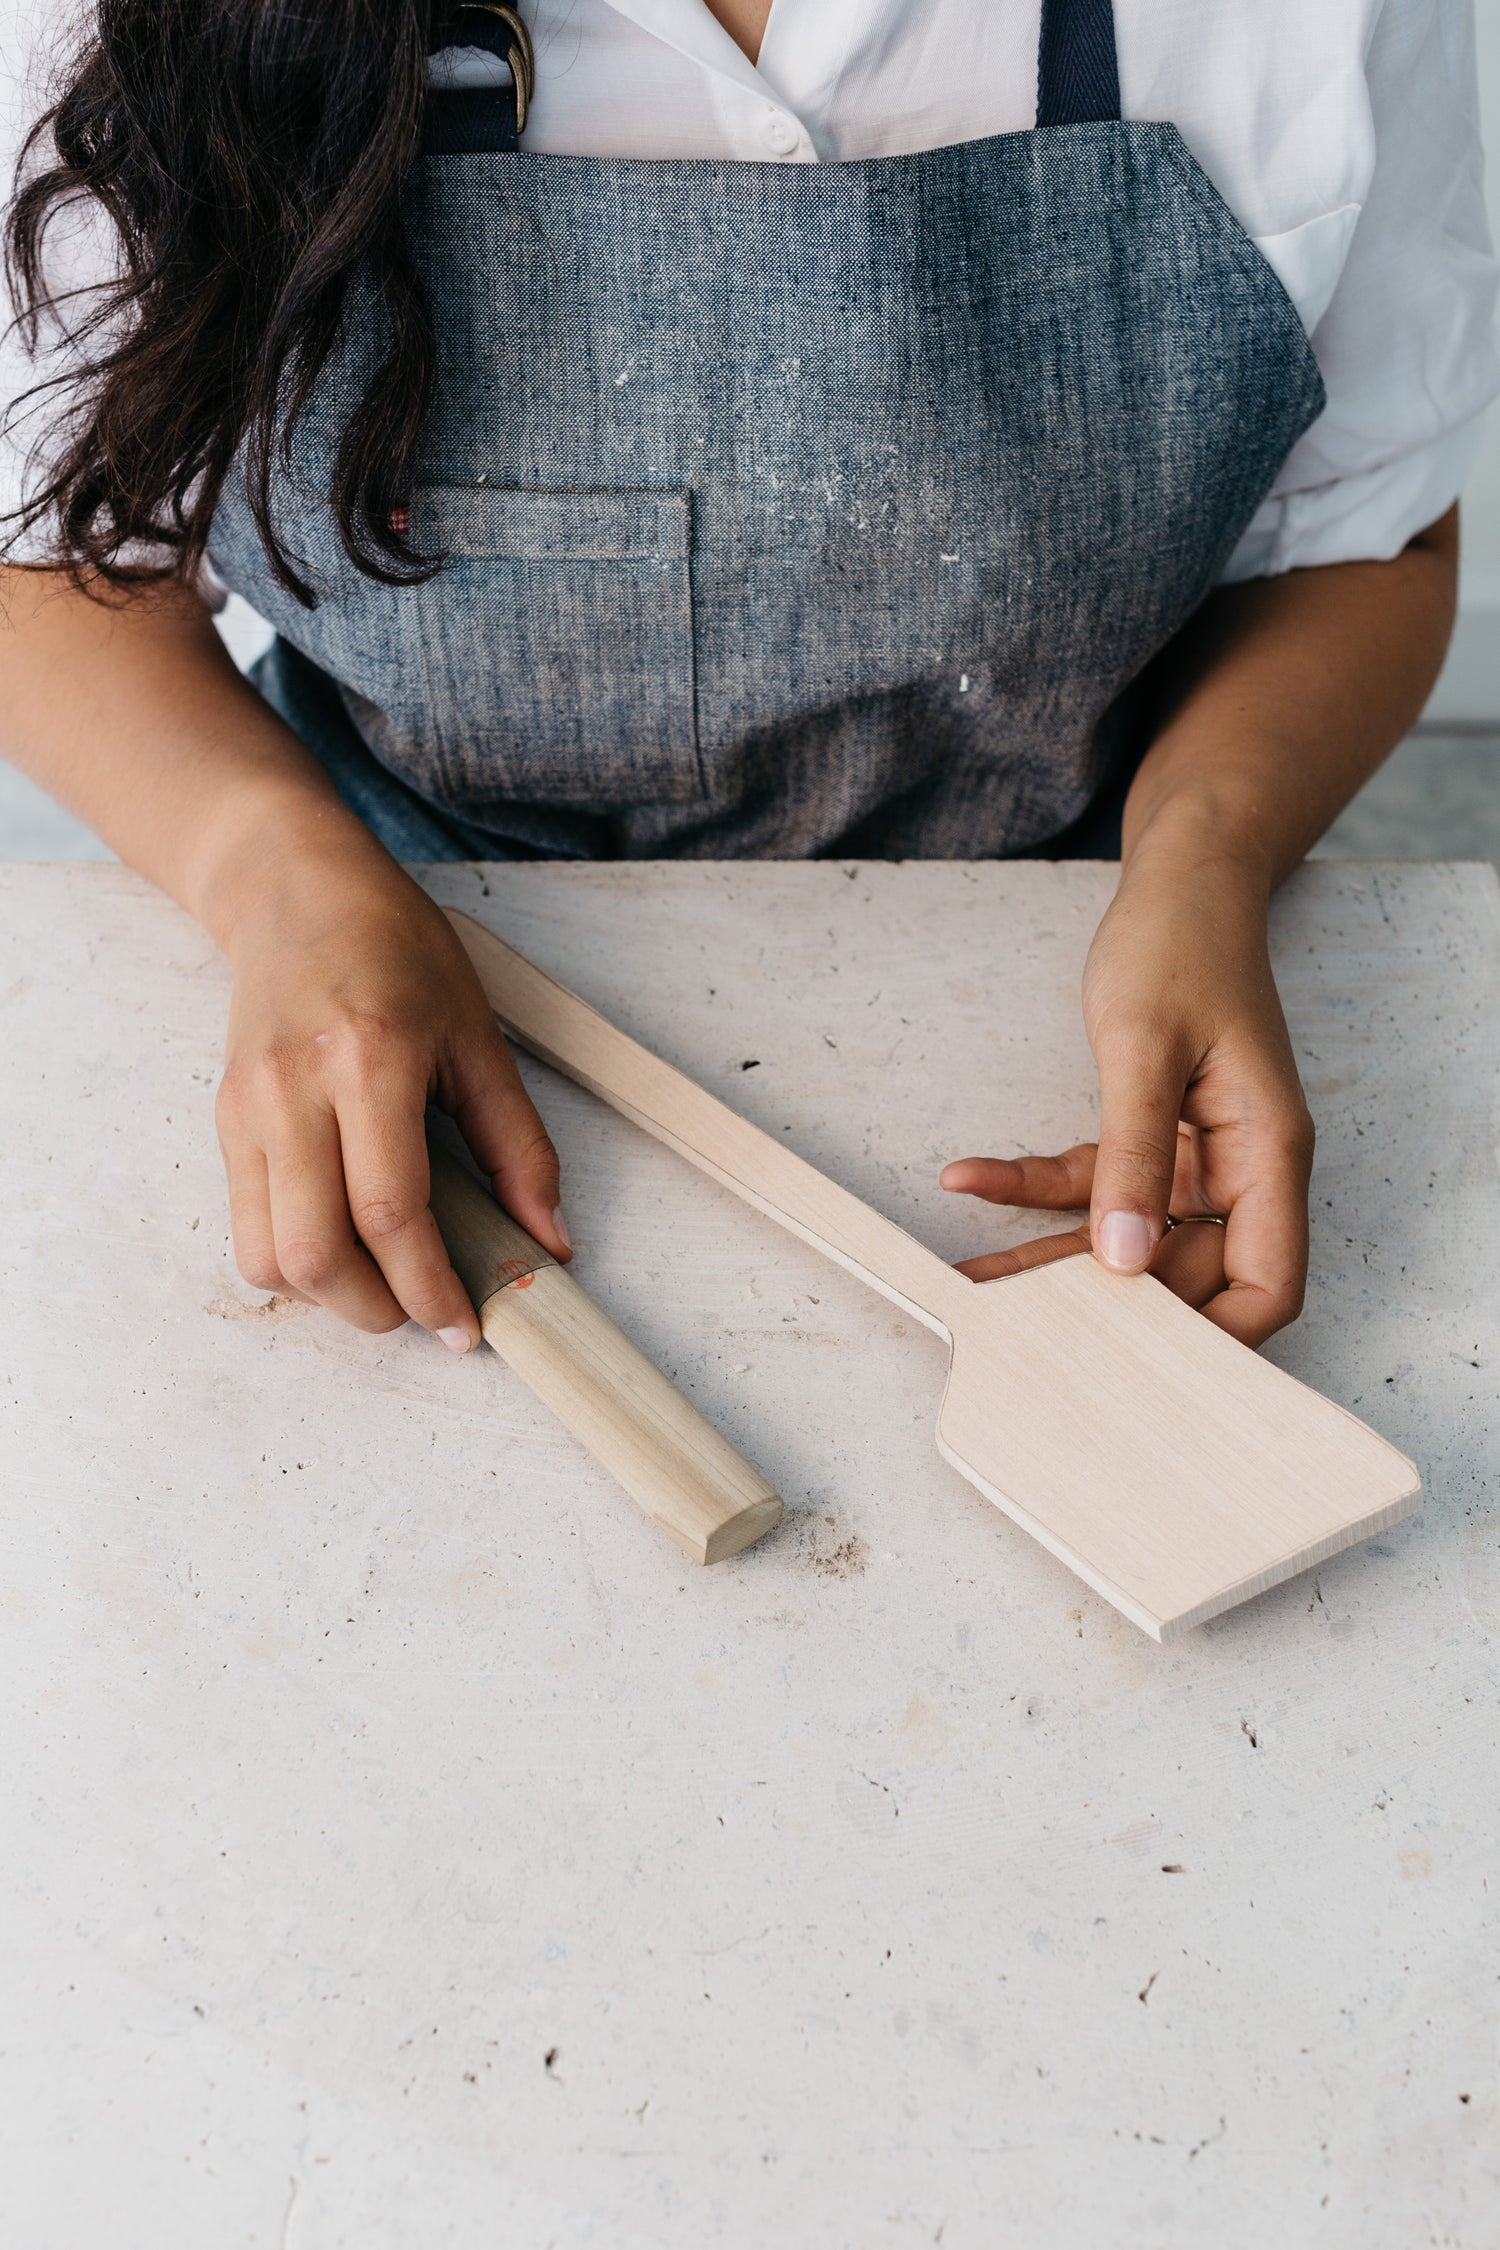 Image of Spatula Carving Blank